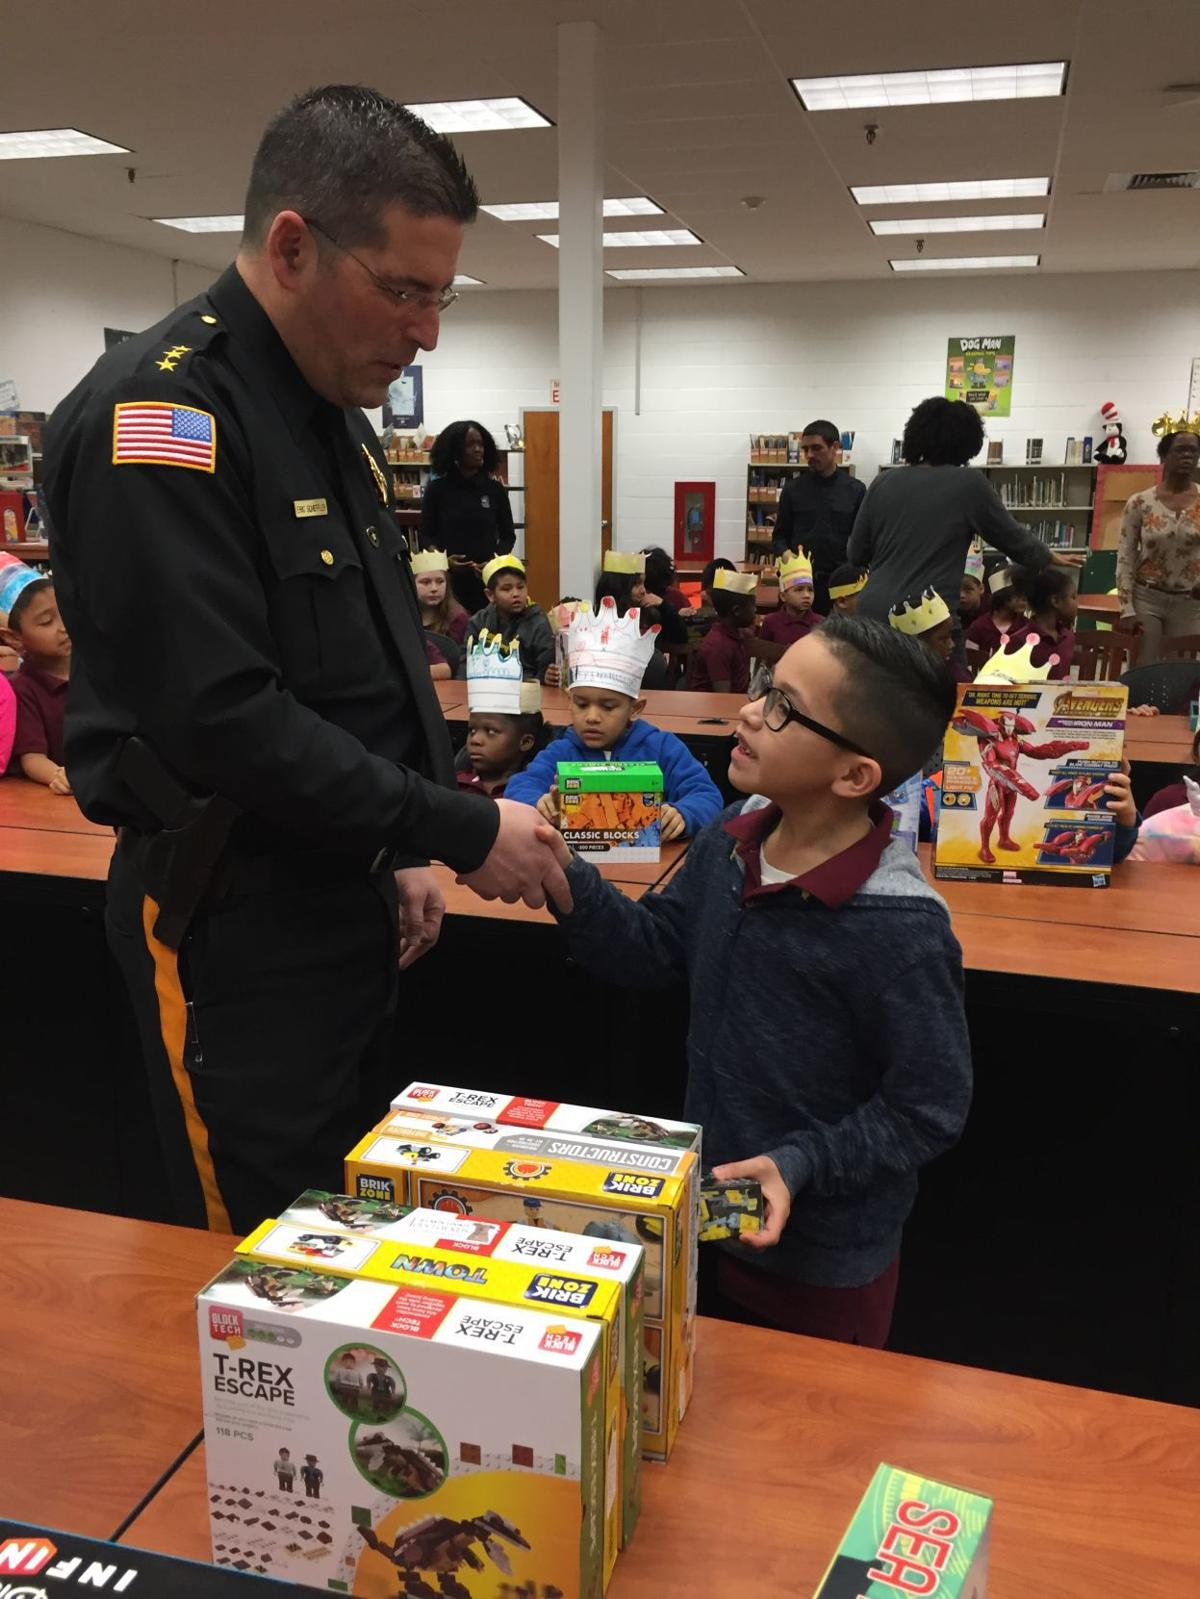 Jeyren Juarez-Herrera, a 2nd grader at North Main Street School thanks Sheriff Eric Scheffler for his toy received at the 3 Kings Day Celebration.JPG